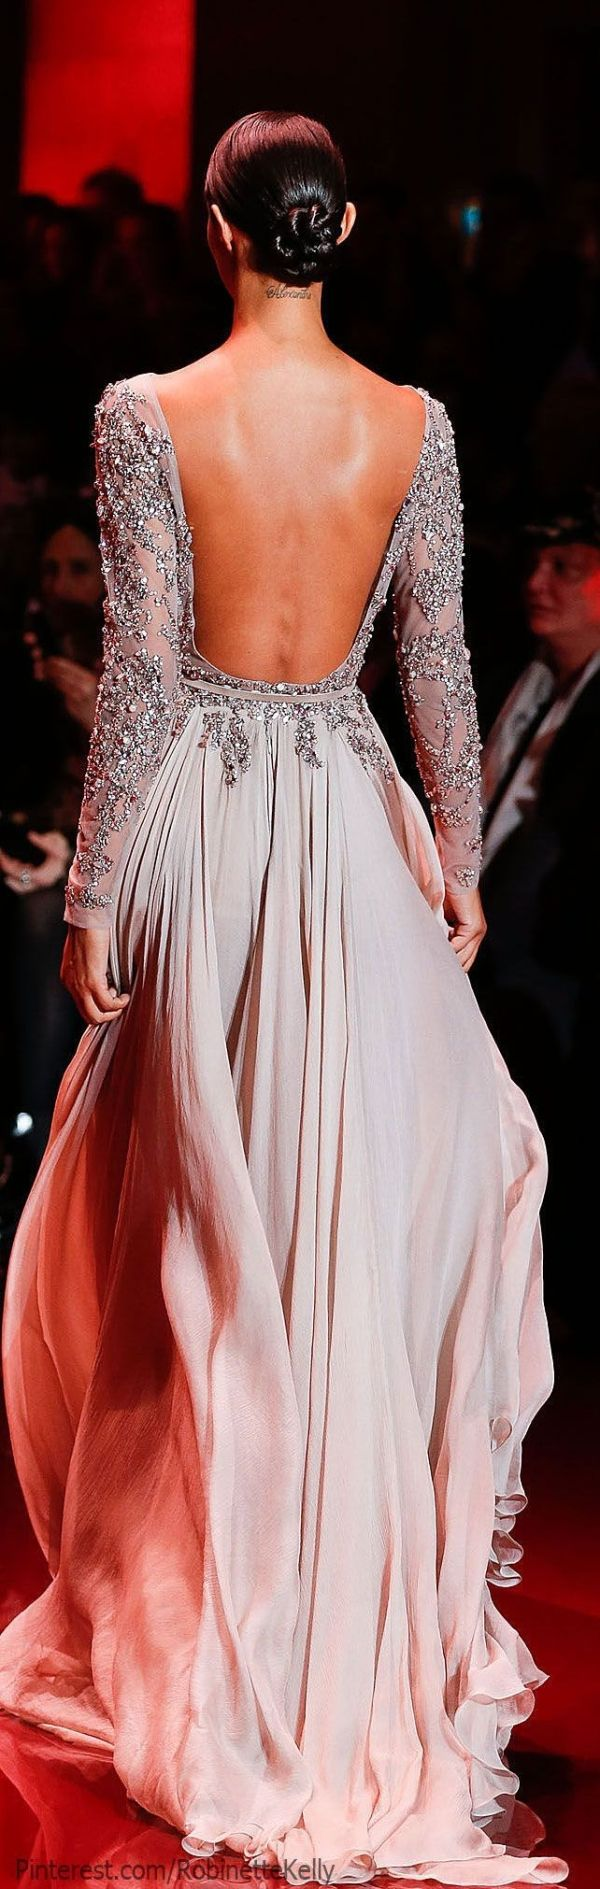 #Elie Saab Haute Couture.....my fav Elie Saab dress so far and they're all amazing